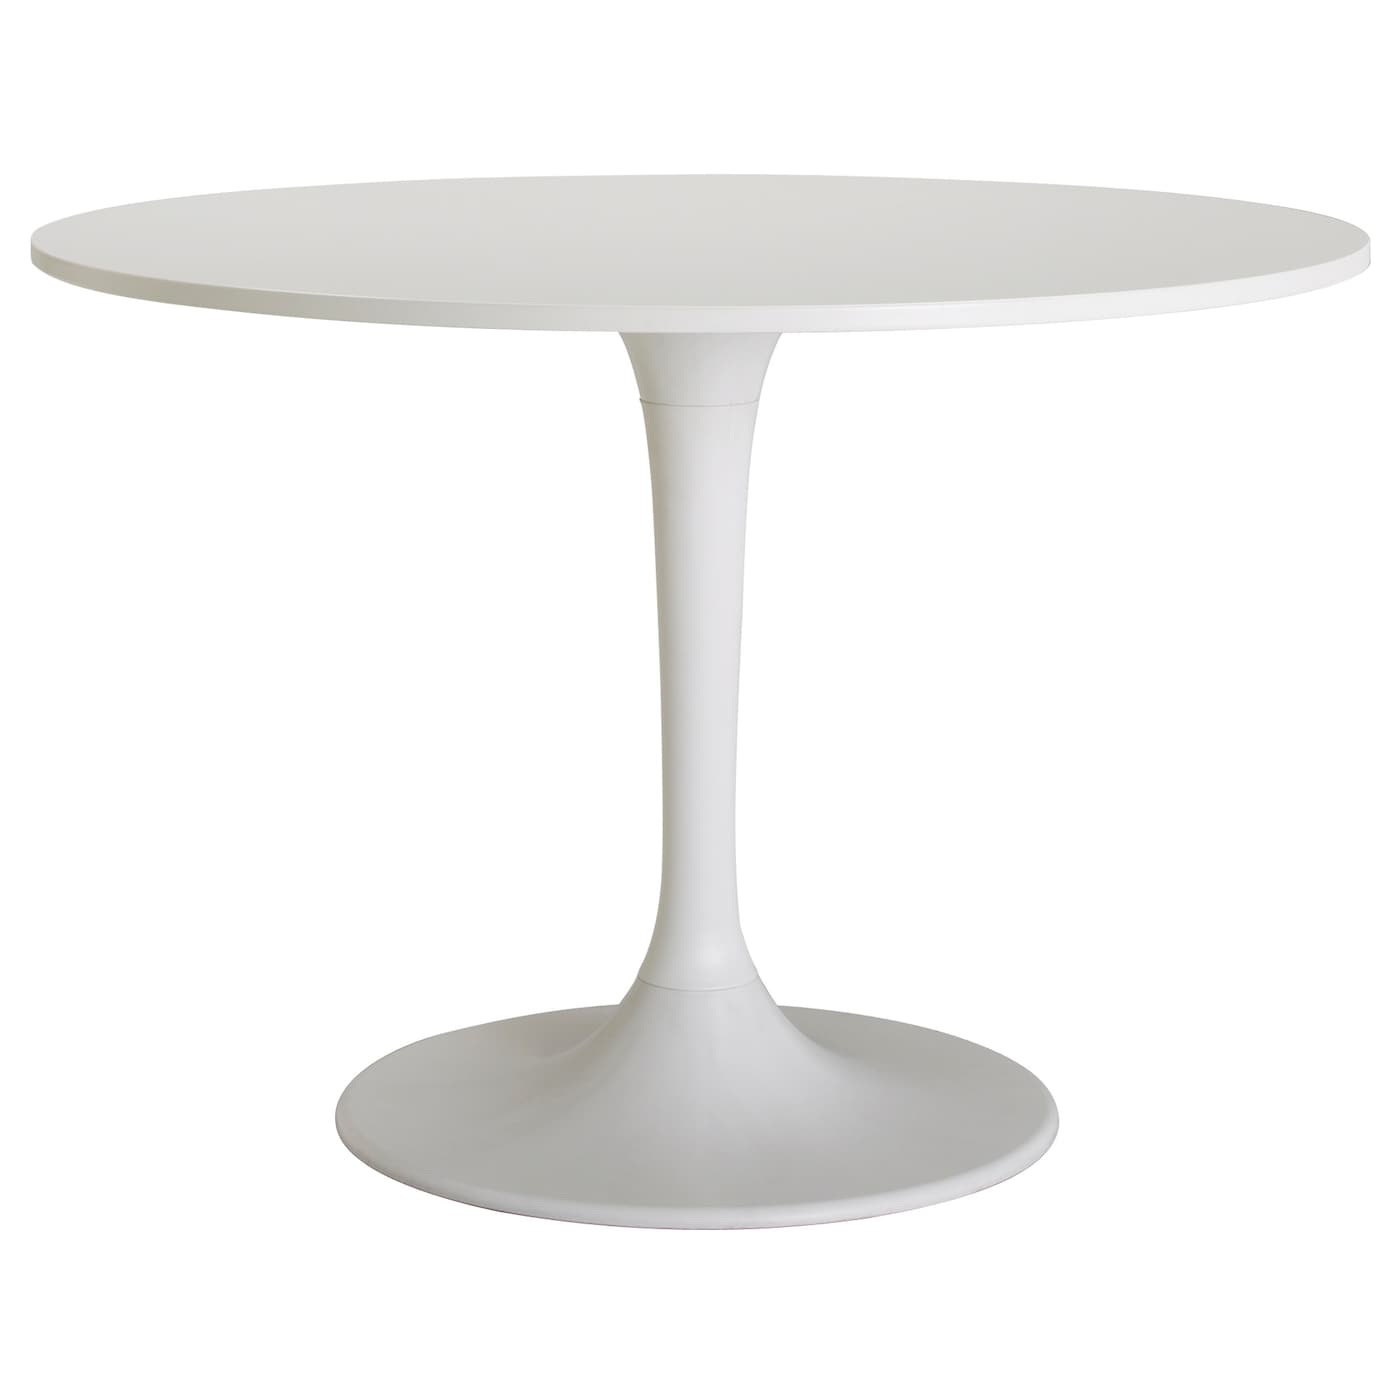 Ikea Breakfast Table: Dining Tables & Kitchen Tables - Dining Room Tables